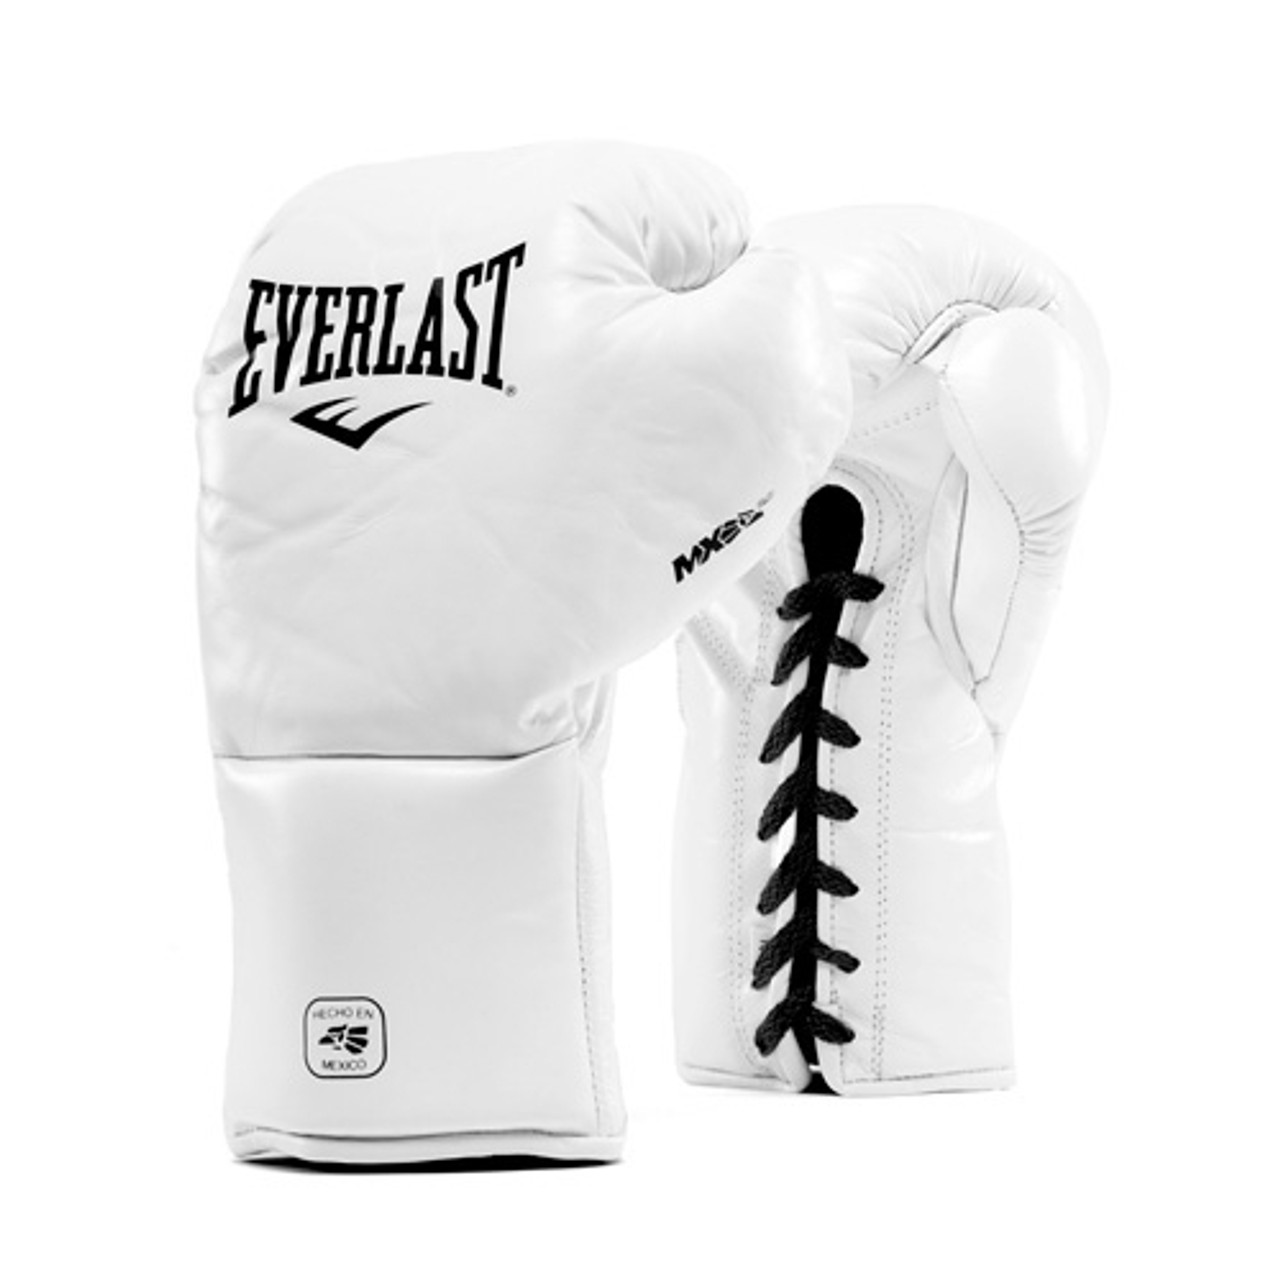 Red//White Everlast Boxing MX Headgear